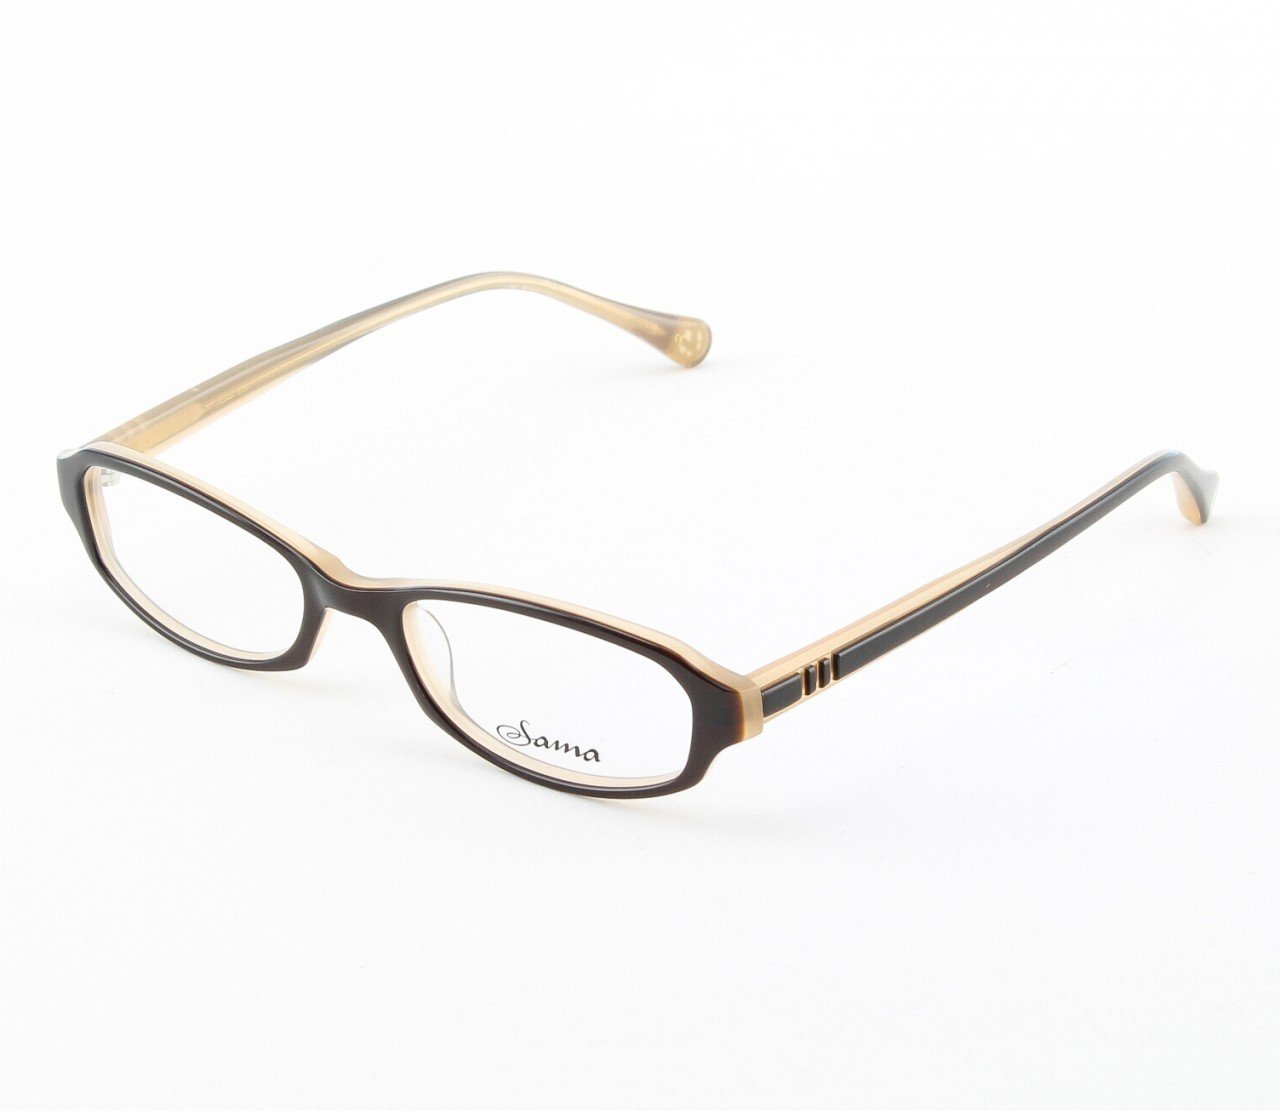 Loree Rodkin Courtney Eyeglasses by Sama Col. Brown with Clear Lenses